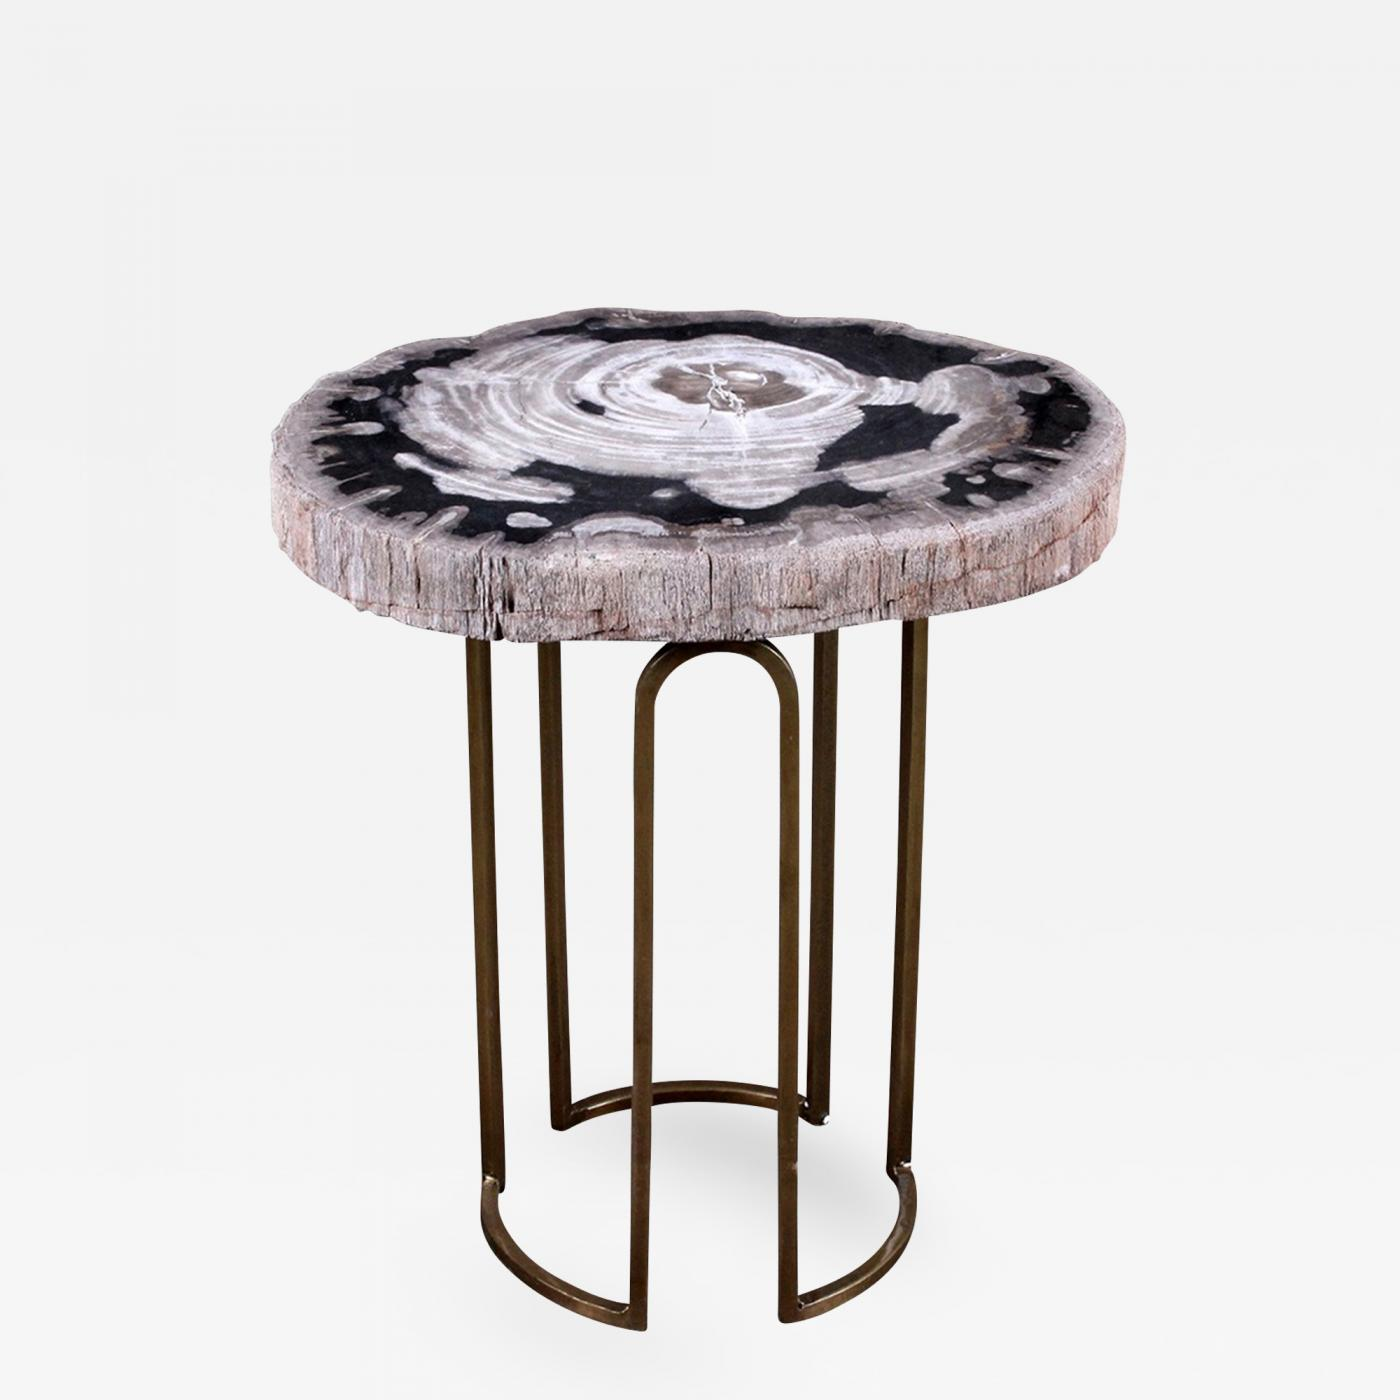 custom petrified wood and brass accent table listings furniture tables side inch end vintage inspired couch wine cabinet black metal lamp trestle lighting seattle perspex coffee